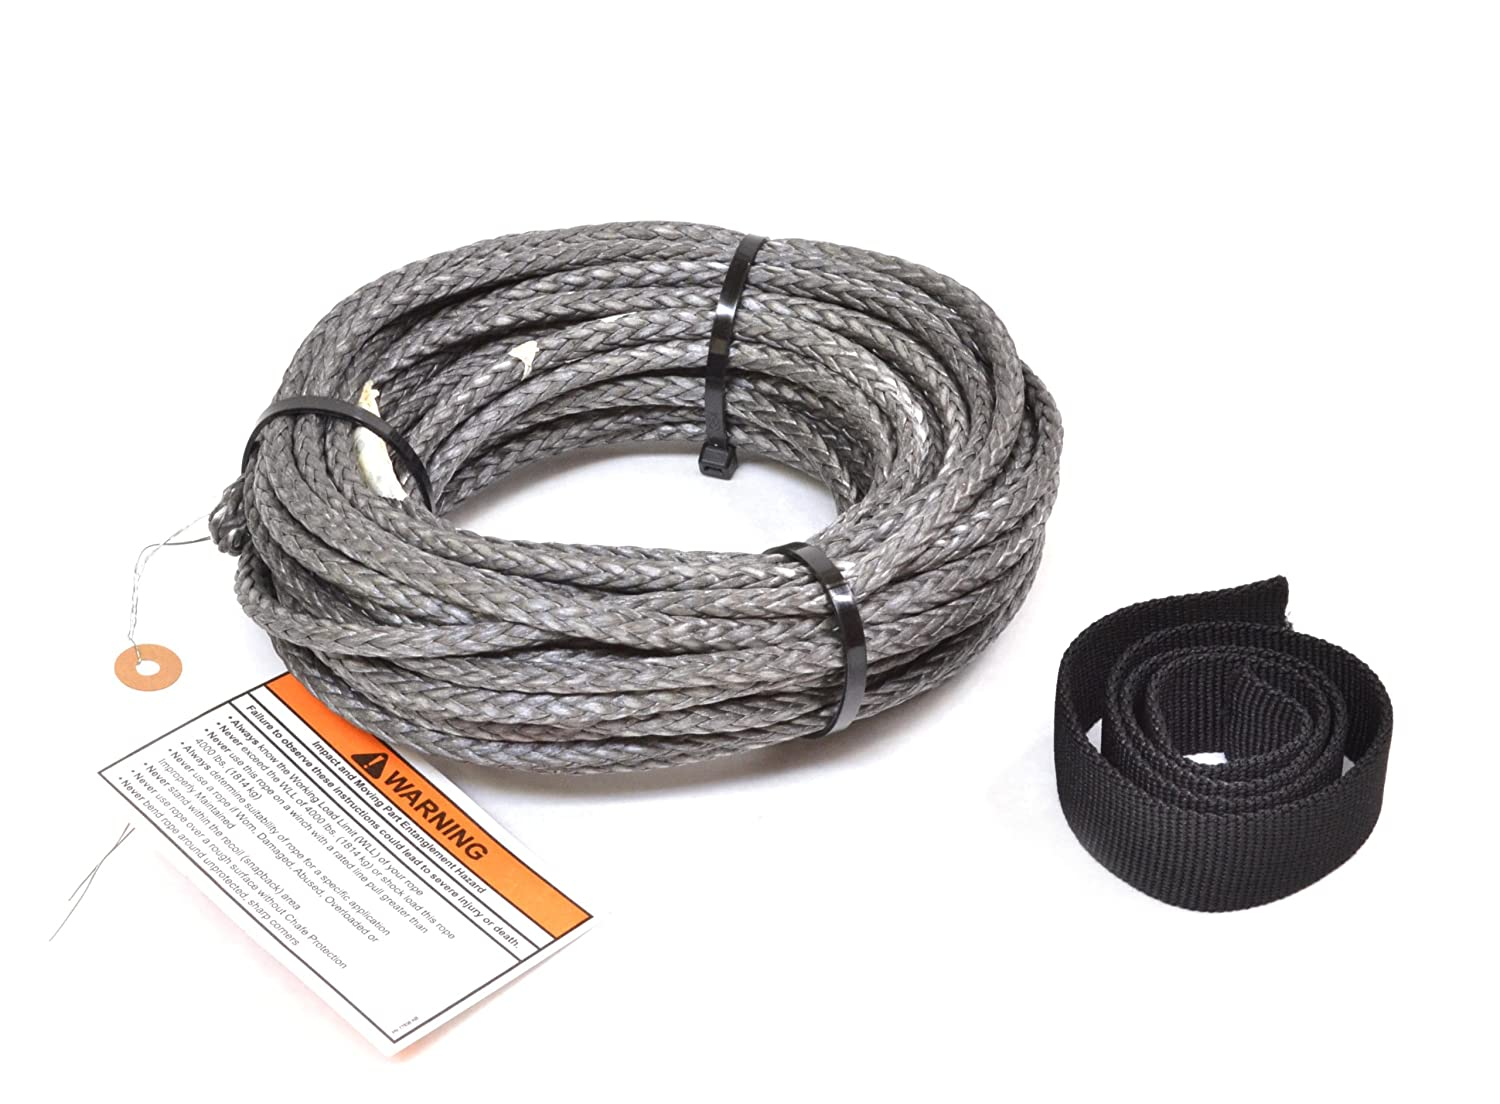 Amazon.com: Warn 78388 Replacement Synthetic Rope: Automotive